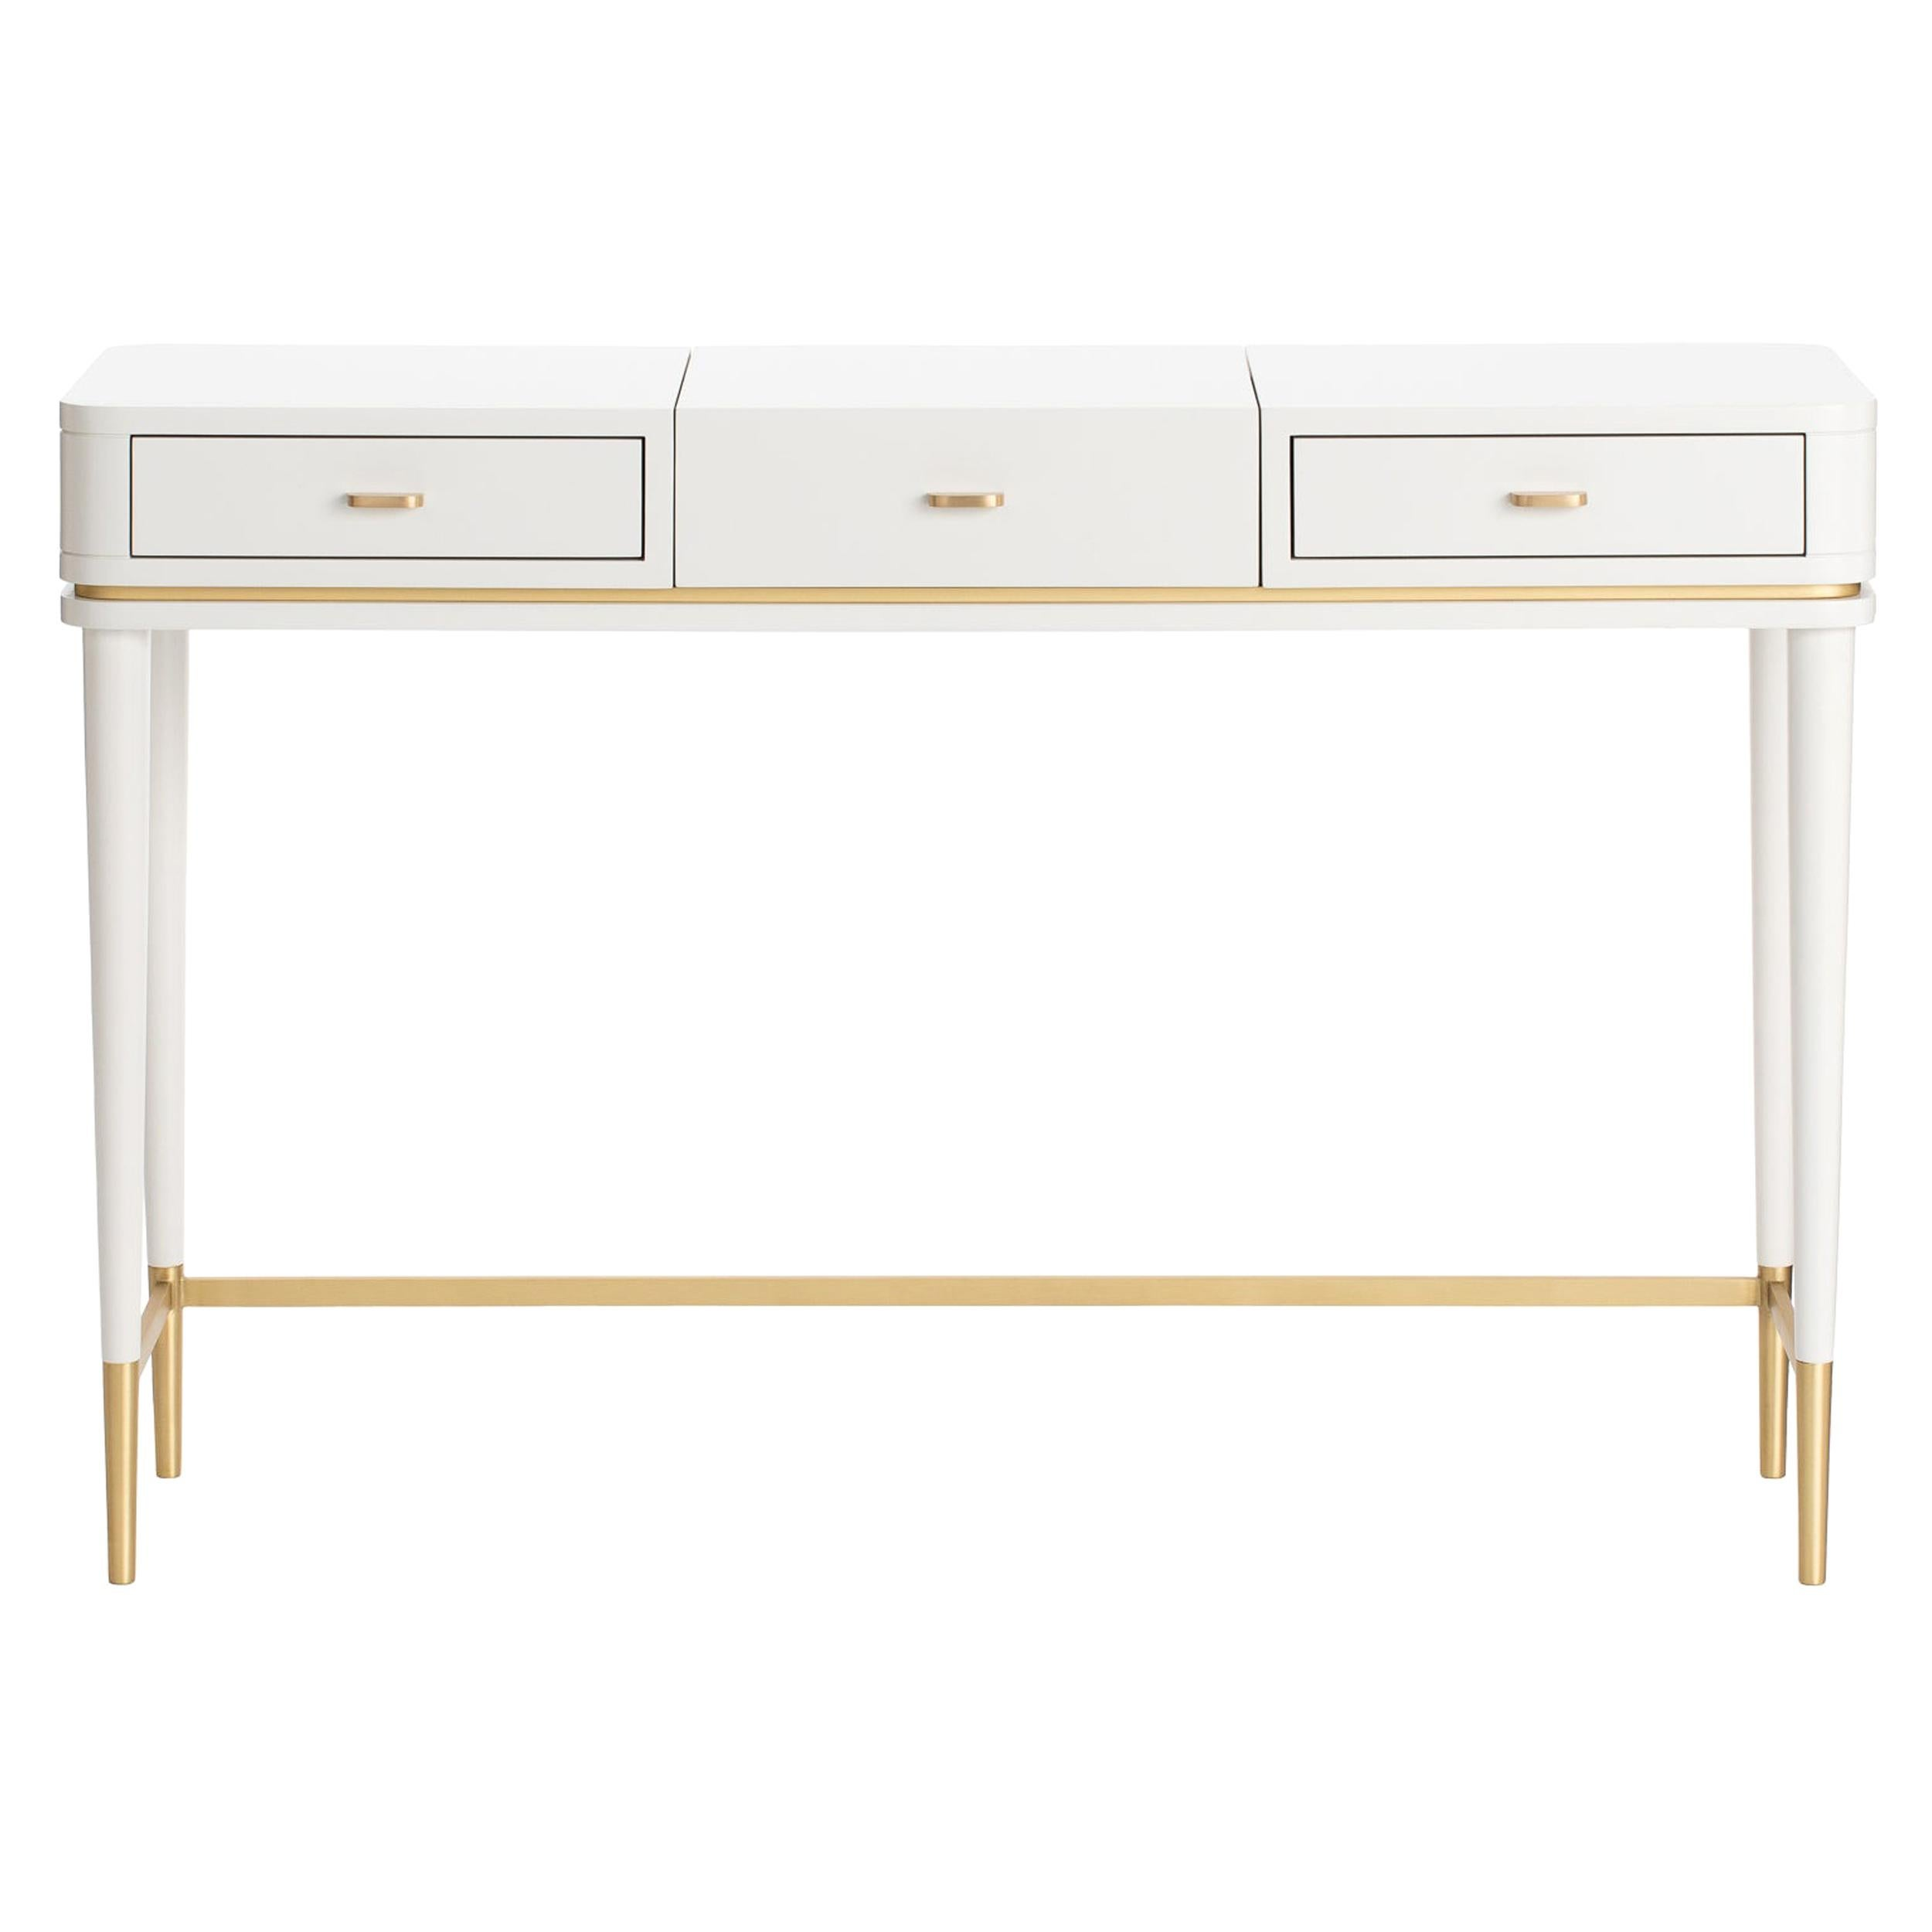 Cris Dressing Table with Antique Brass Feet and Handles